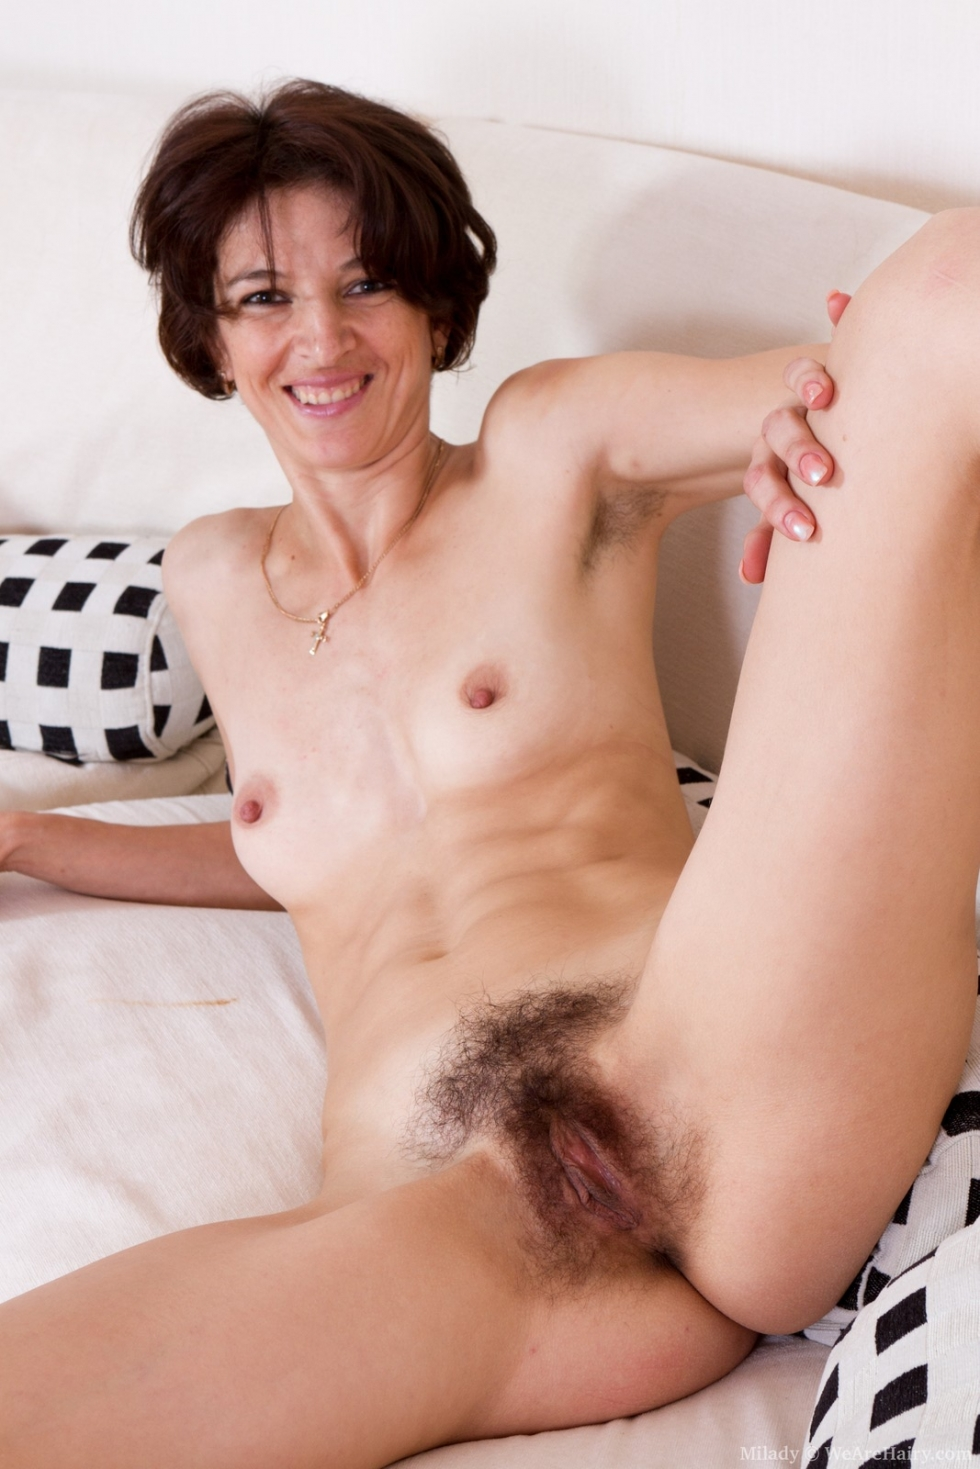 Women naked and hairy